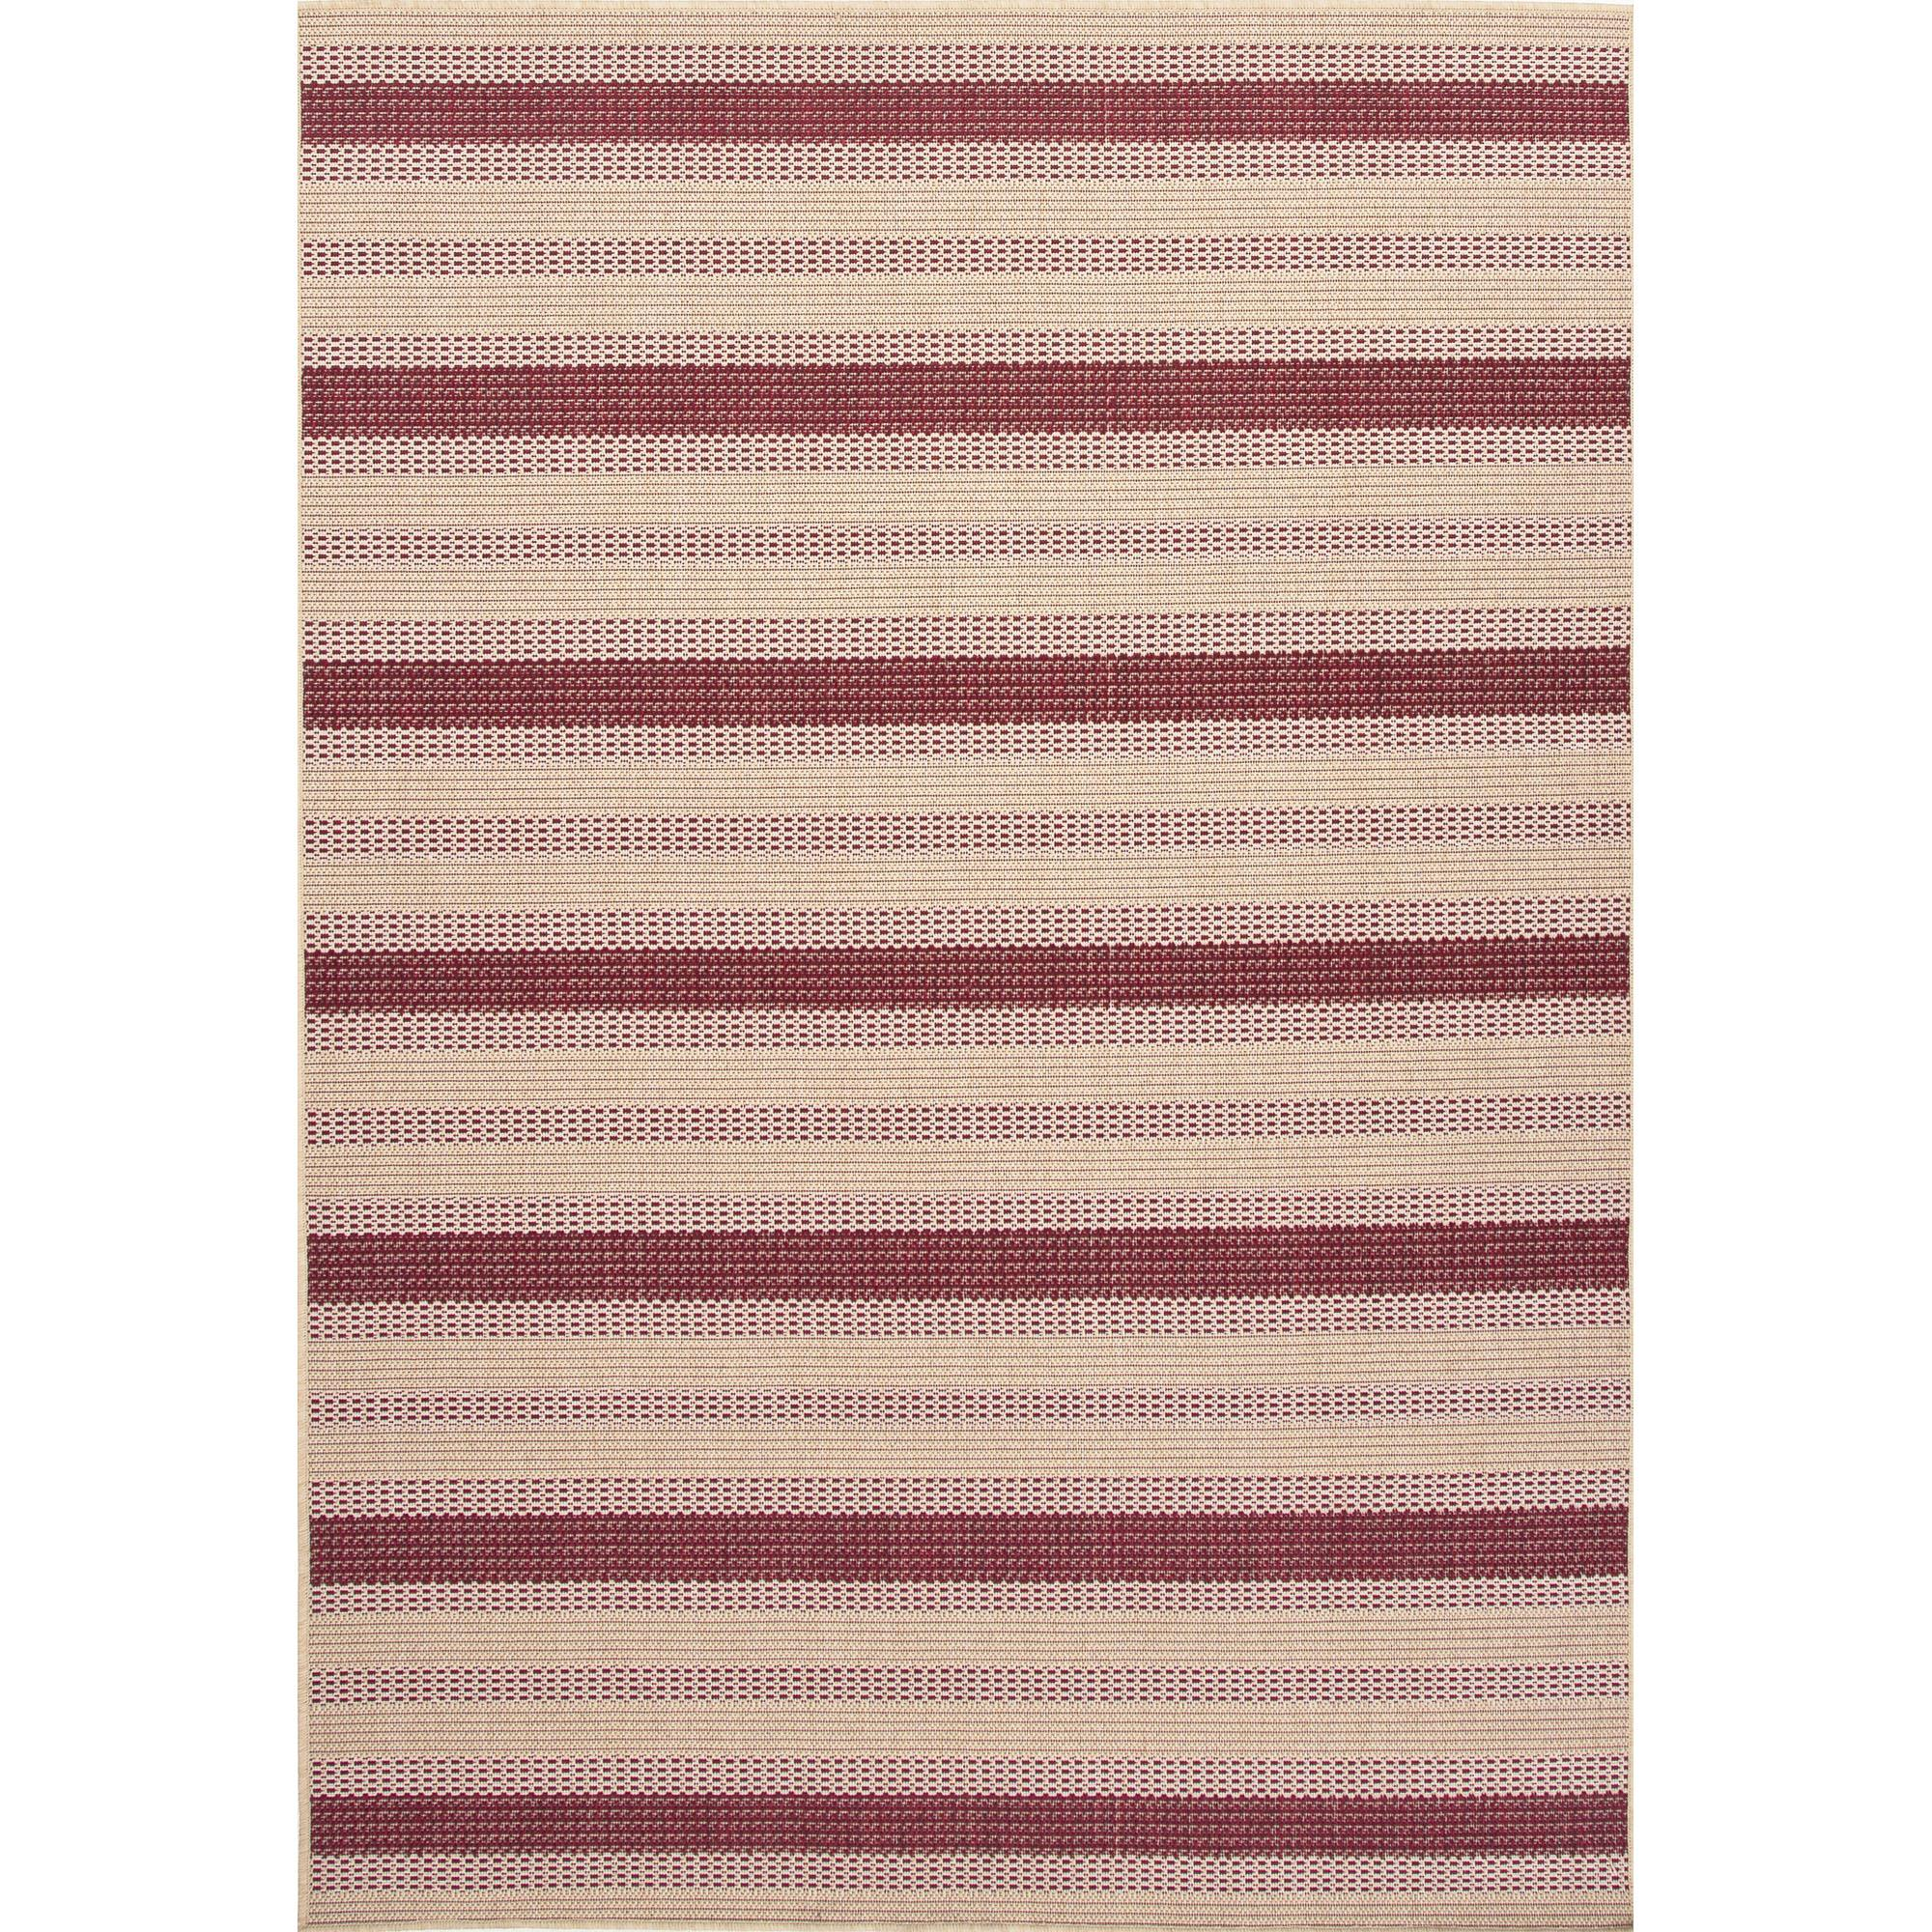 Breeze 5.3 x 7.6 Rug by JAIPUR Rugs at Sprintz Furniture